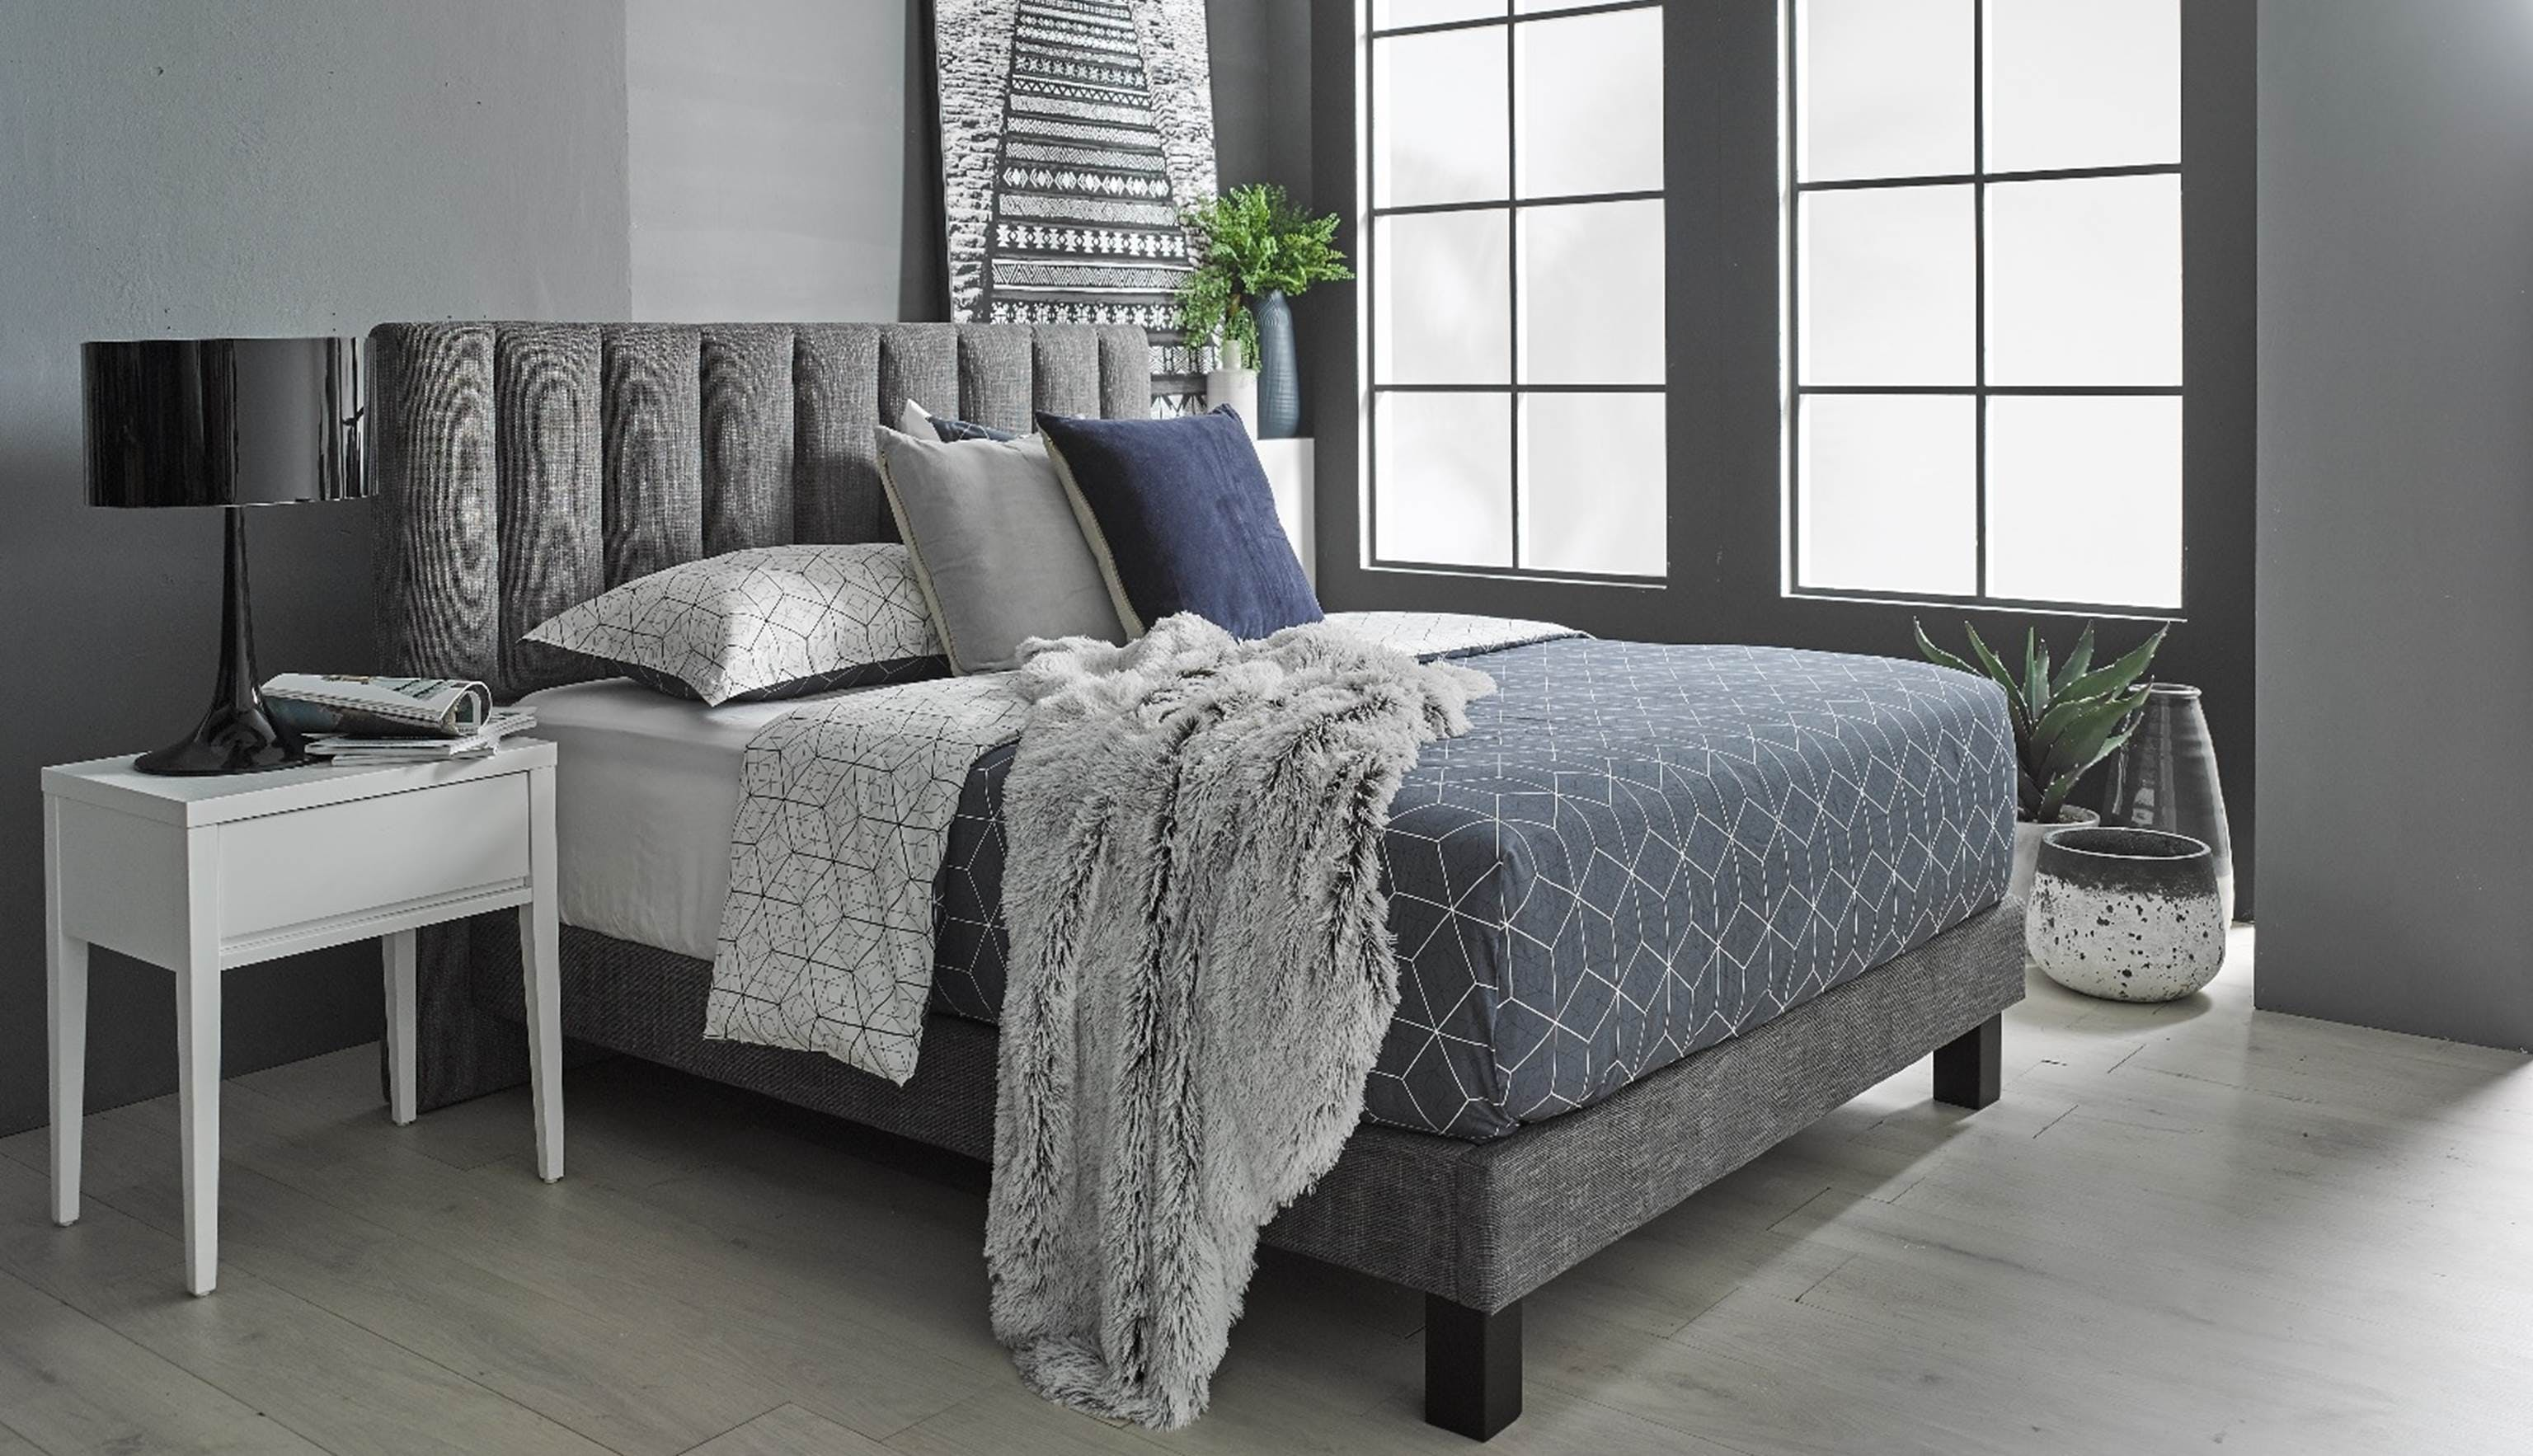 cove for ideas jax a size waterbed in beds swish queen metal from along sale soothing with canada canopy black cheap surprising manly wood photo american signature grande plantation frame bed zq fl wooden kmart